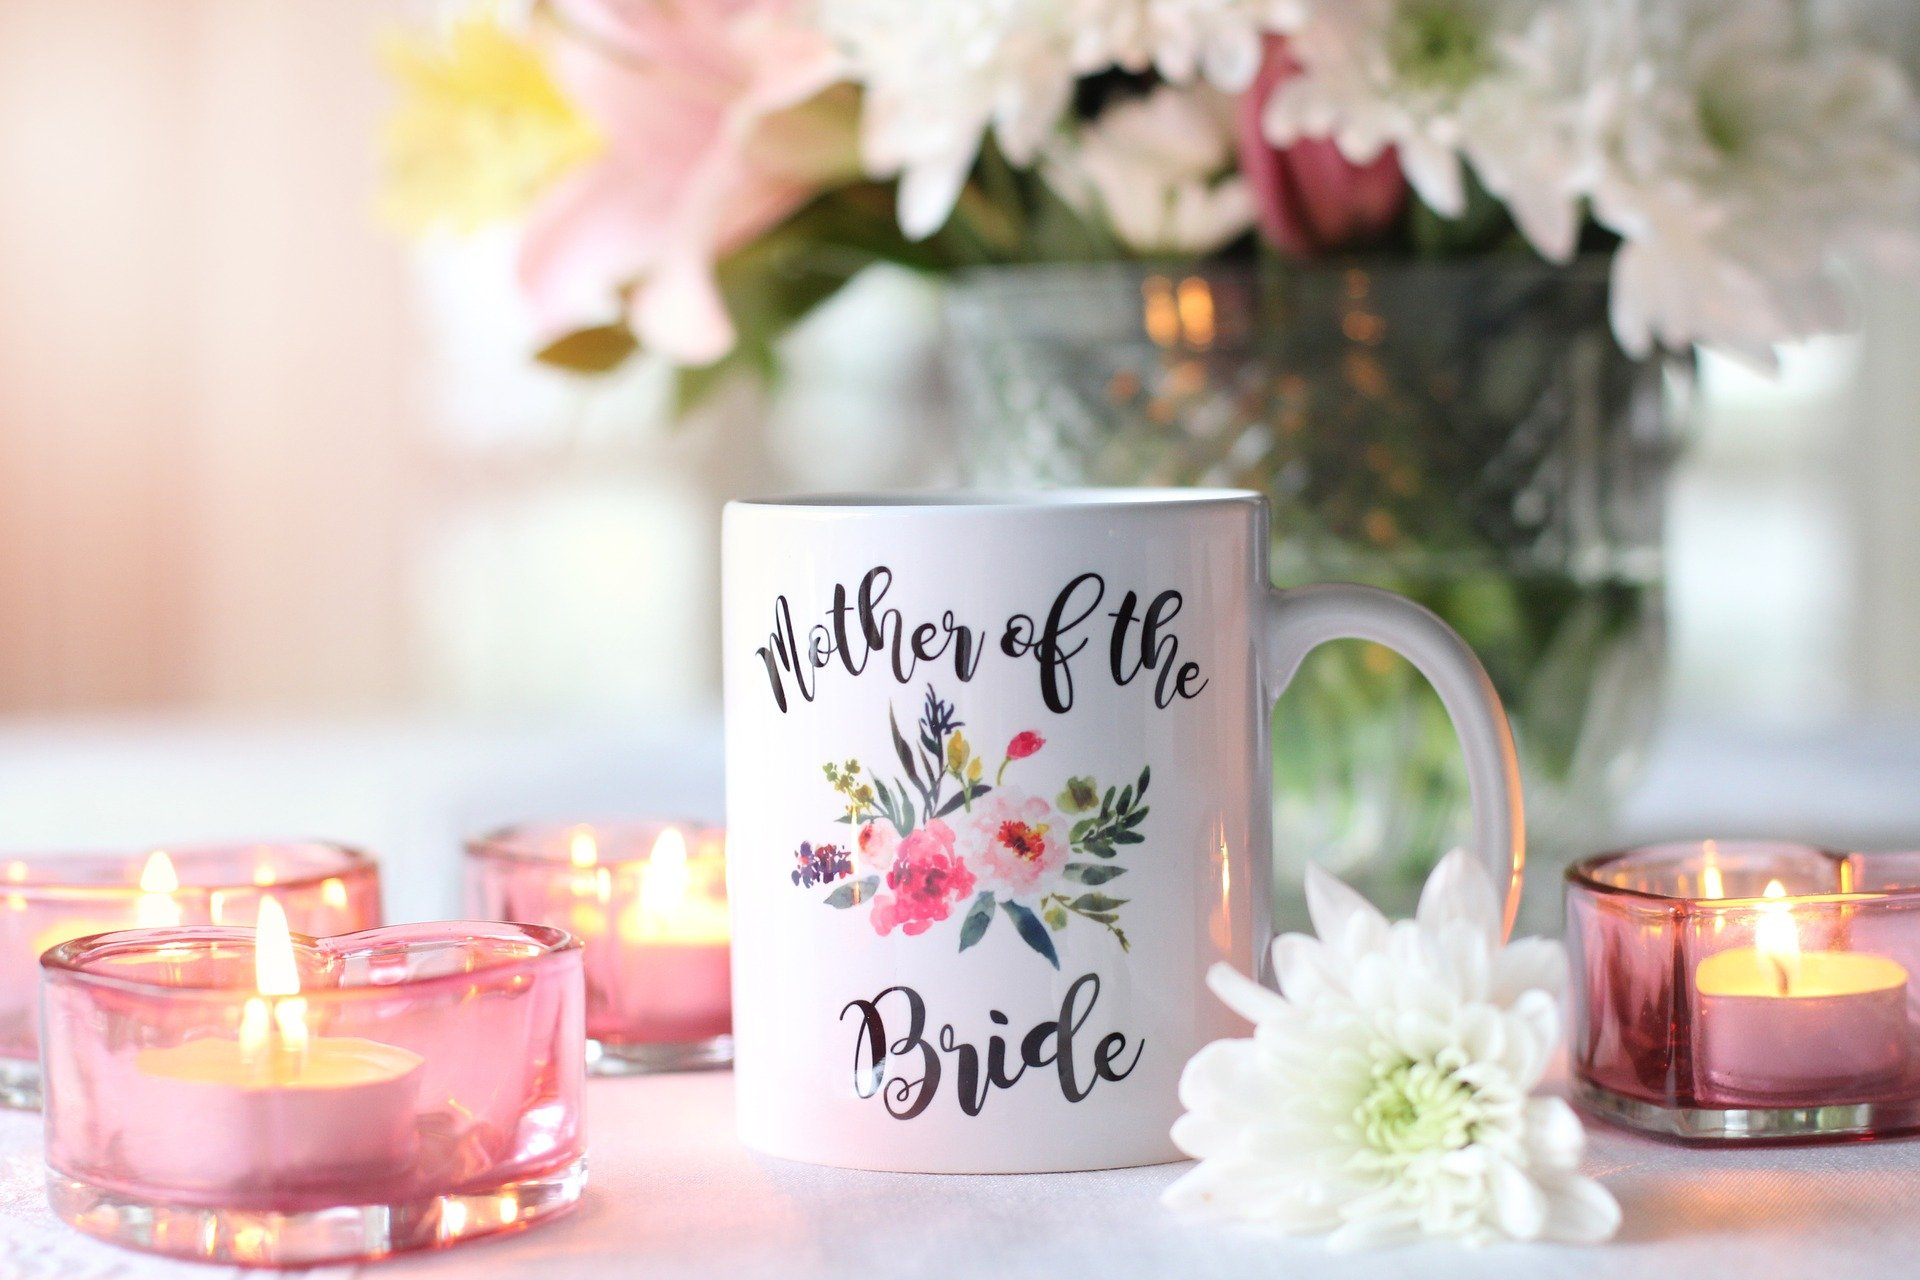 Mother of the Bride cup at a wedding. | Source: TerriC/Pixabay